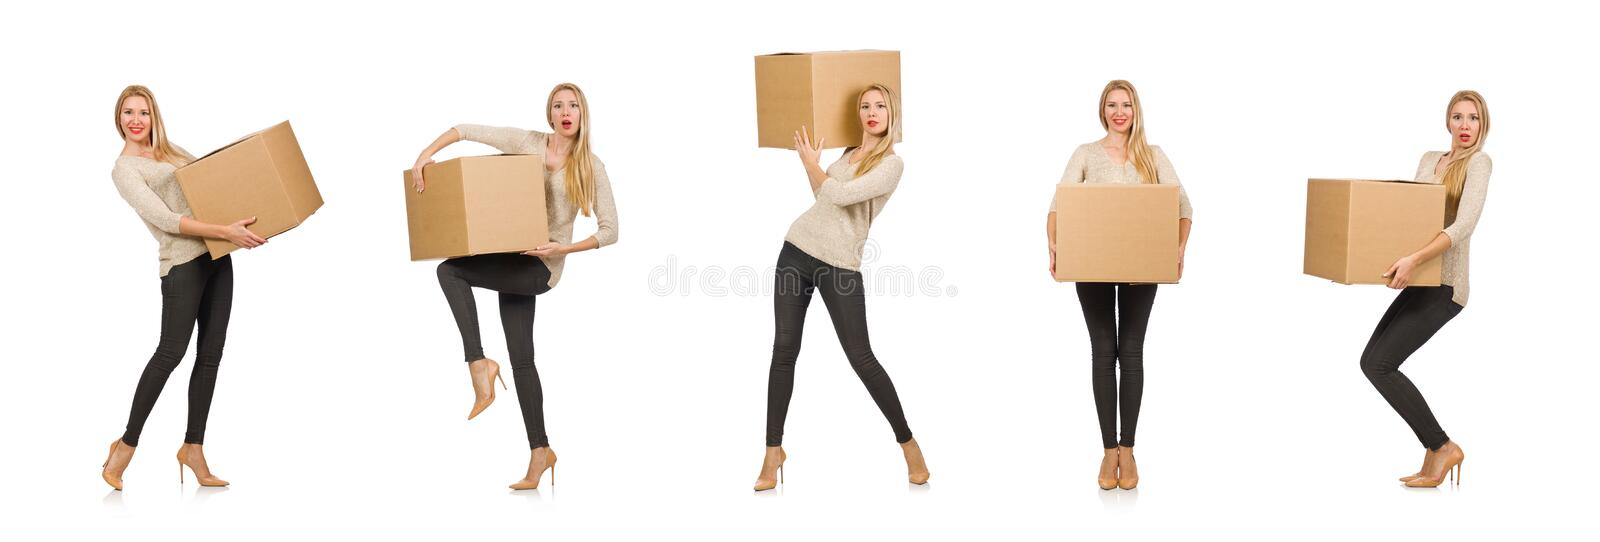 Woman with boxes relocating to new house isolated on white. The woman with boxes relocating to new house isolated on white royalty free stock photos